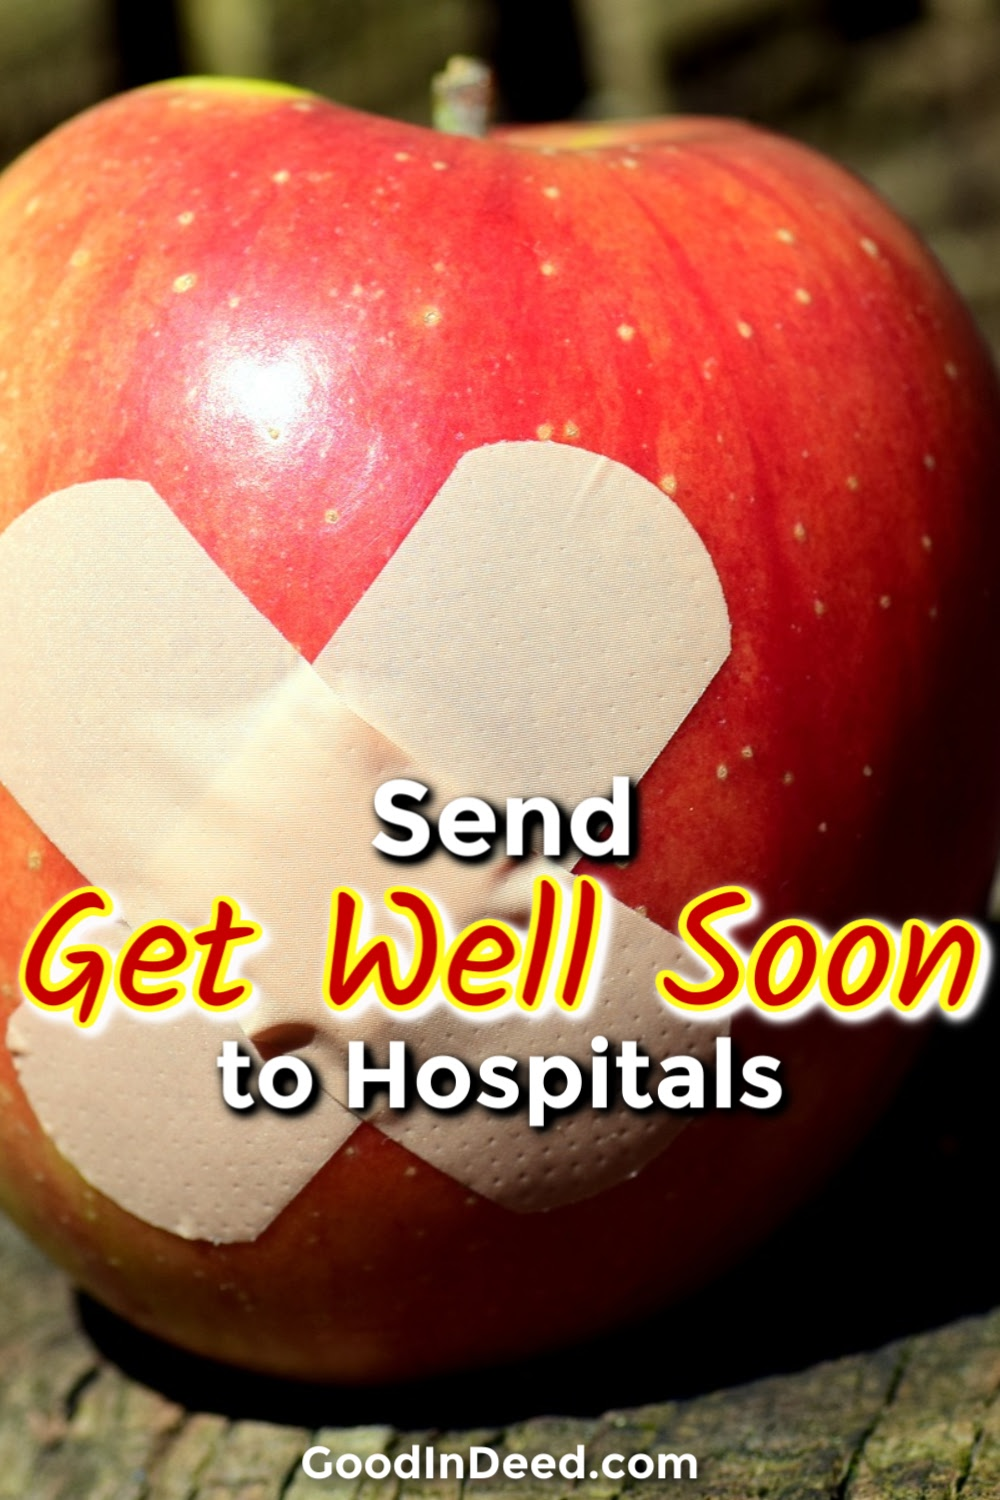 It is easier than ever to send get well soon cards to people in hospitals and these cards are great ways to inspire hope.